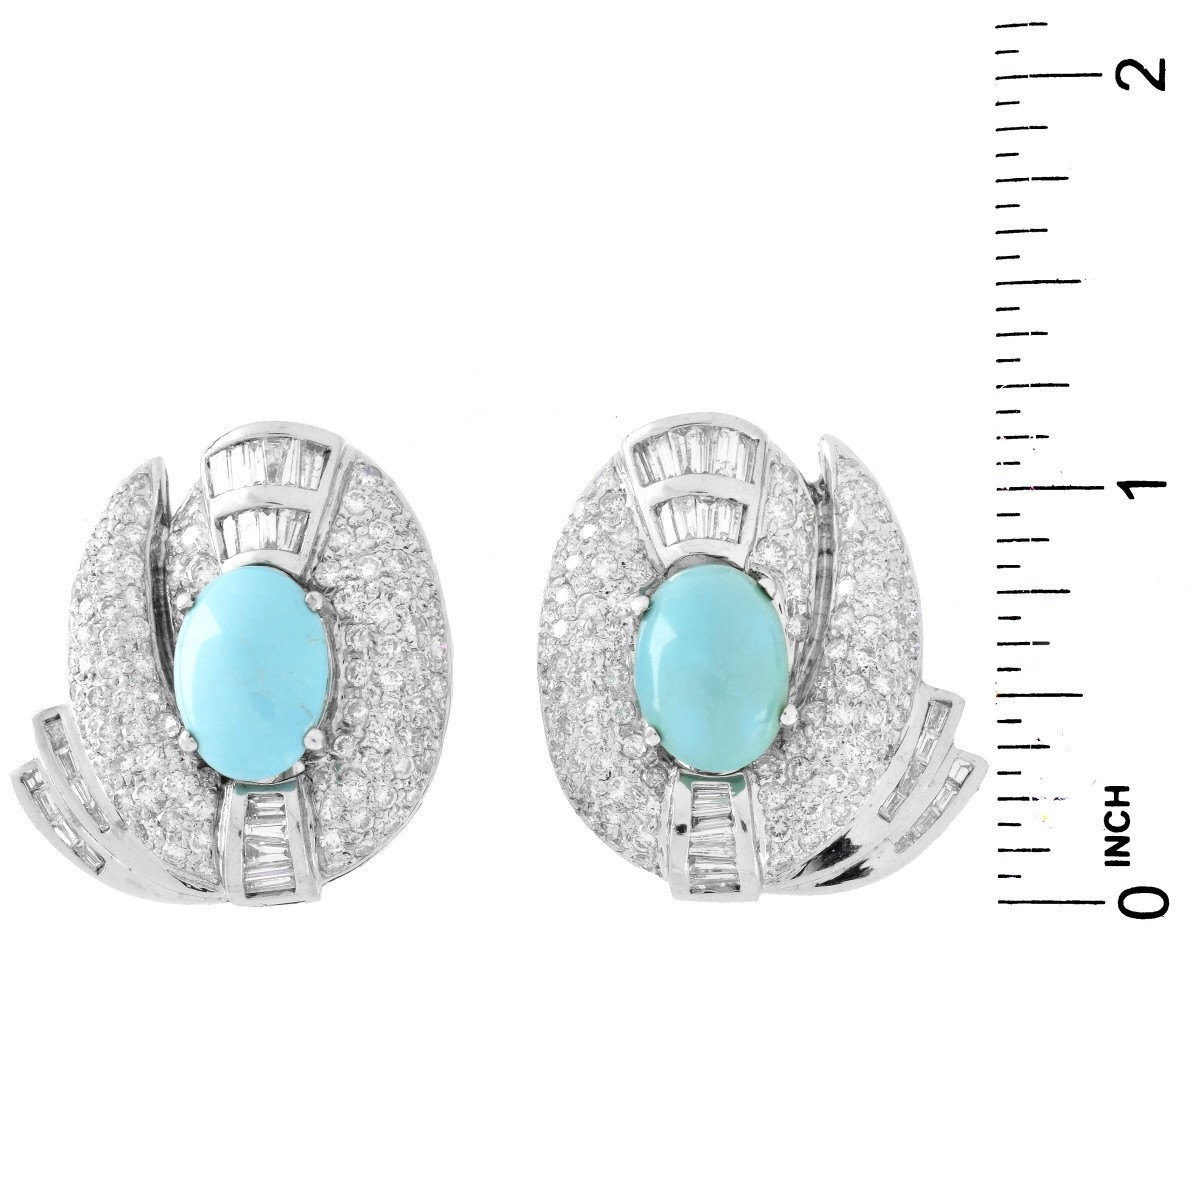 Diamond, Turquoise and 18K Gold Earrings